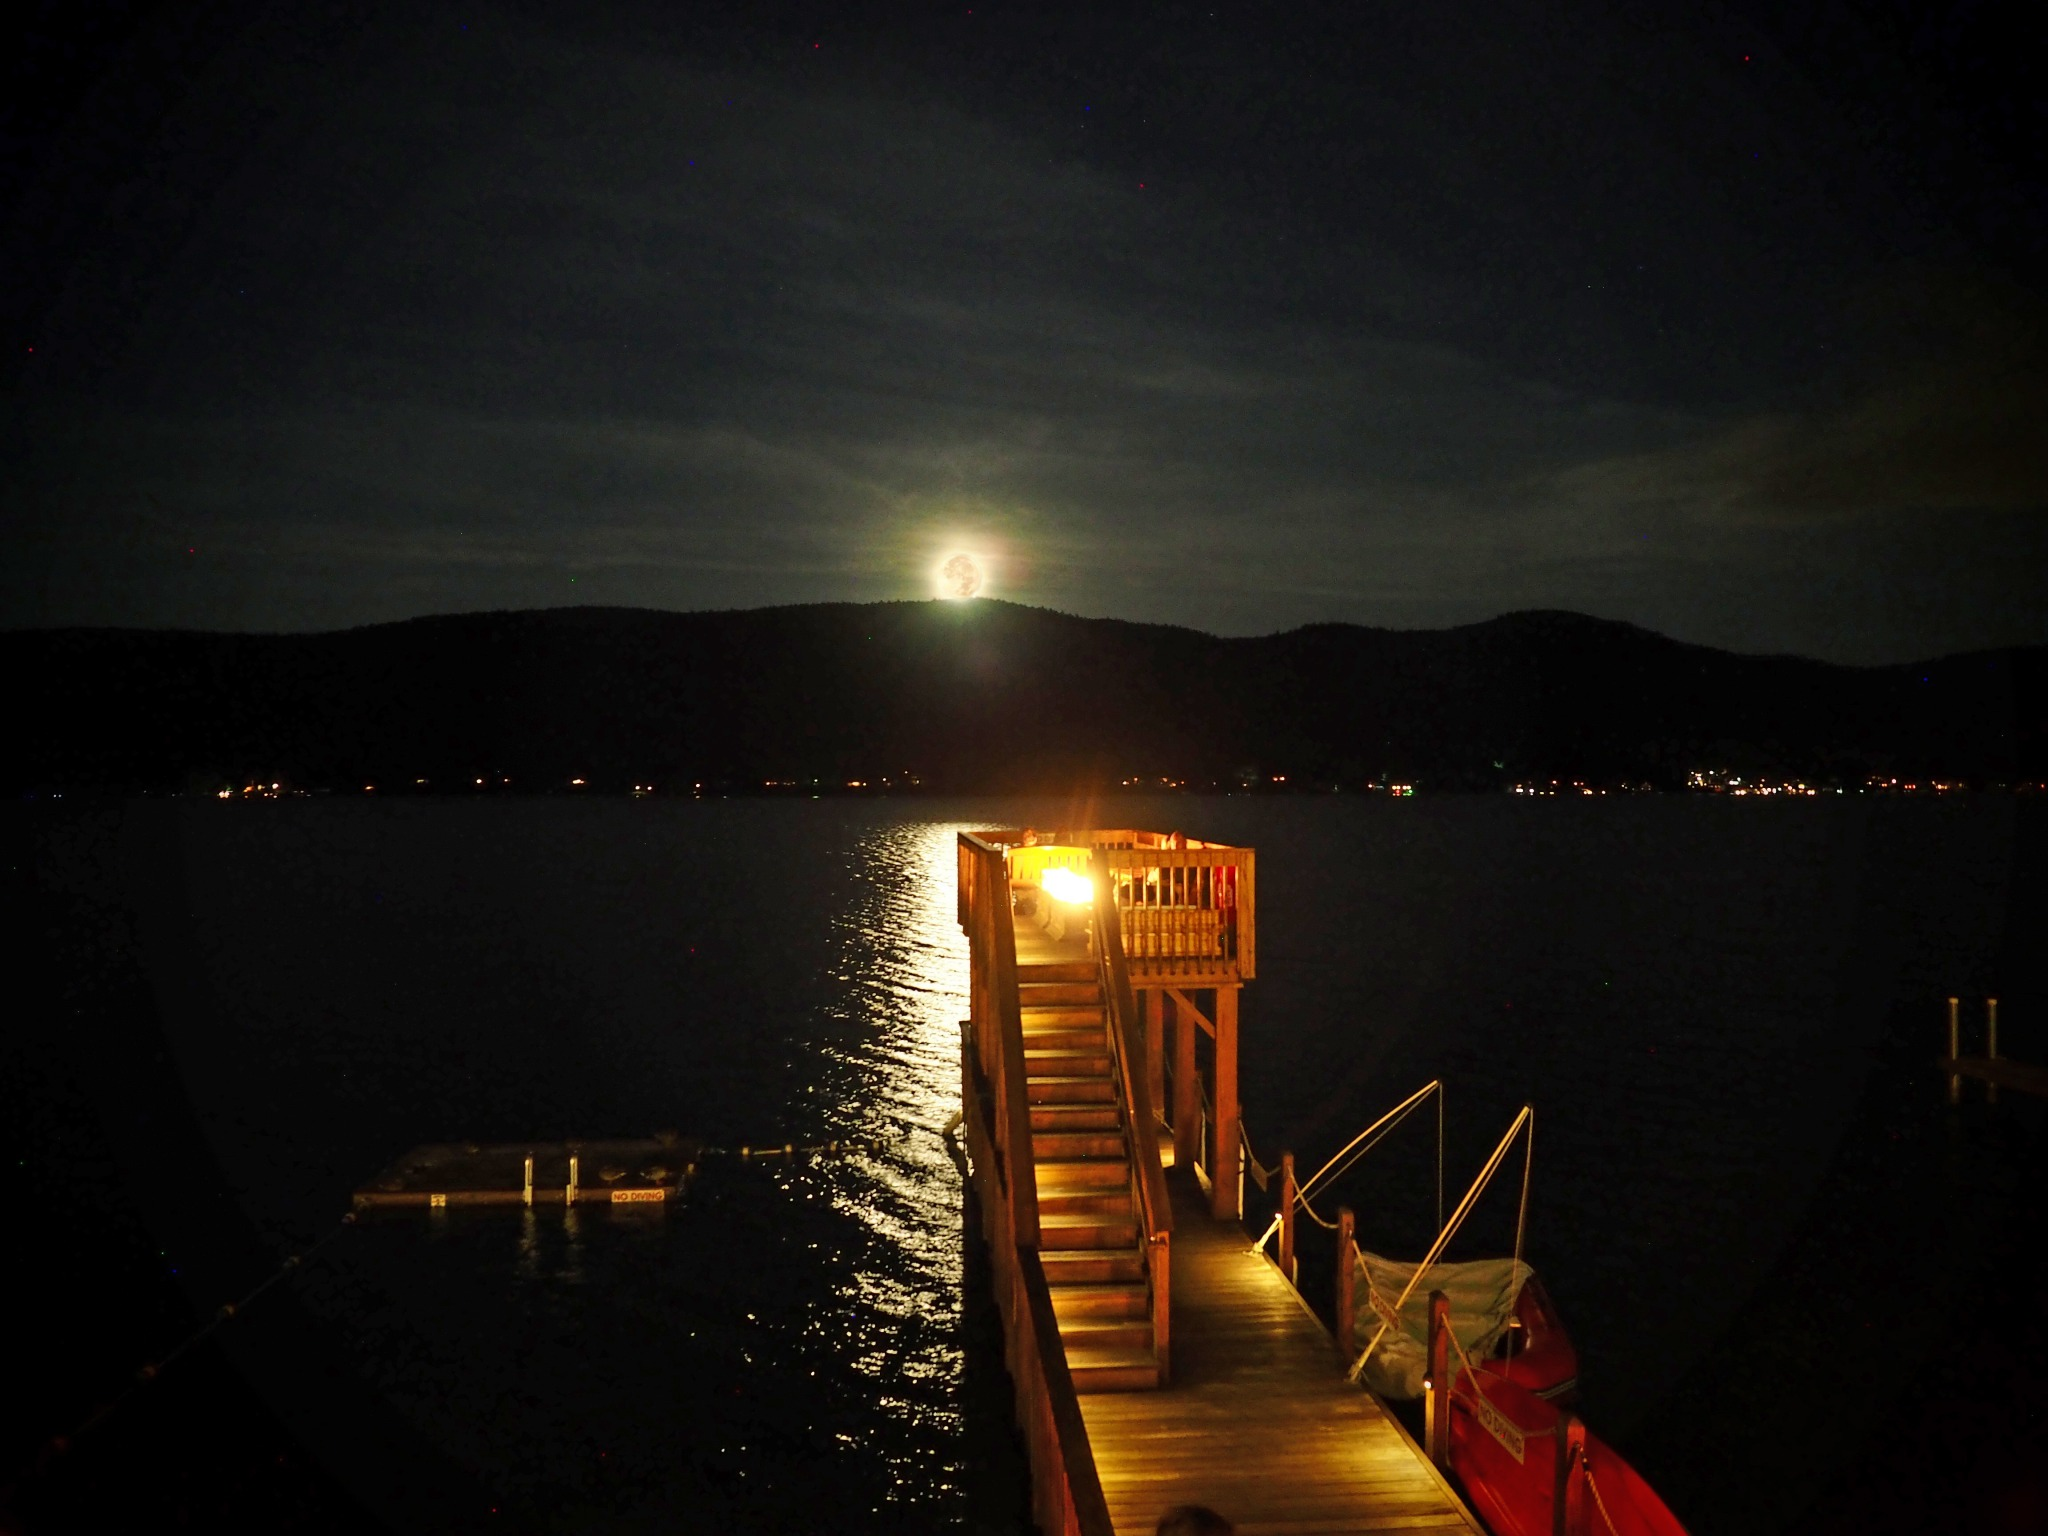 The Lake Motel observation deck looking at a full moon